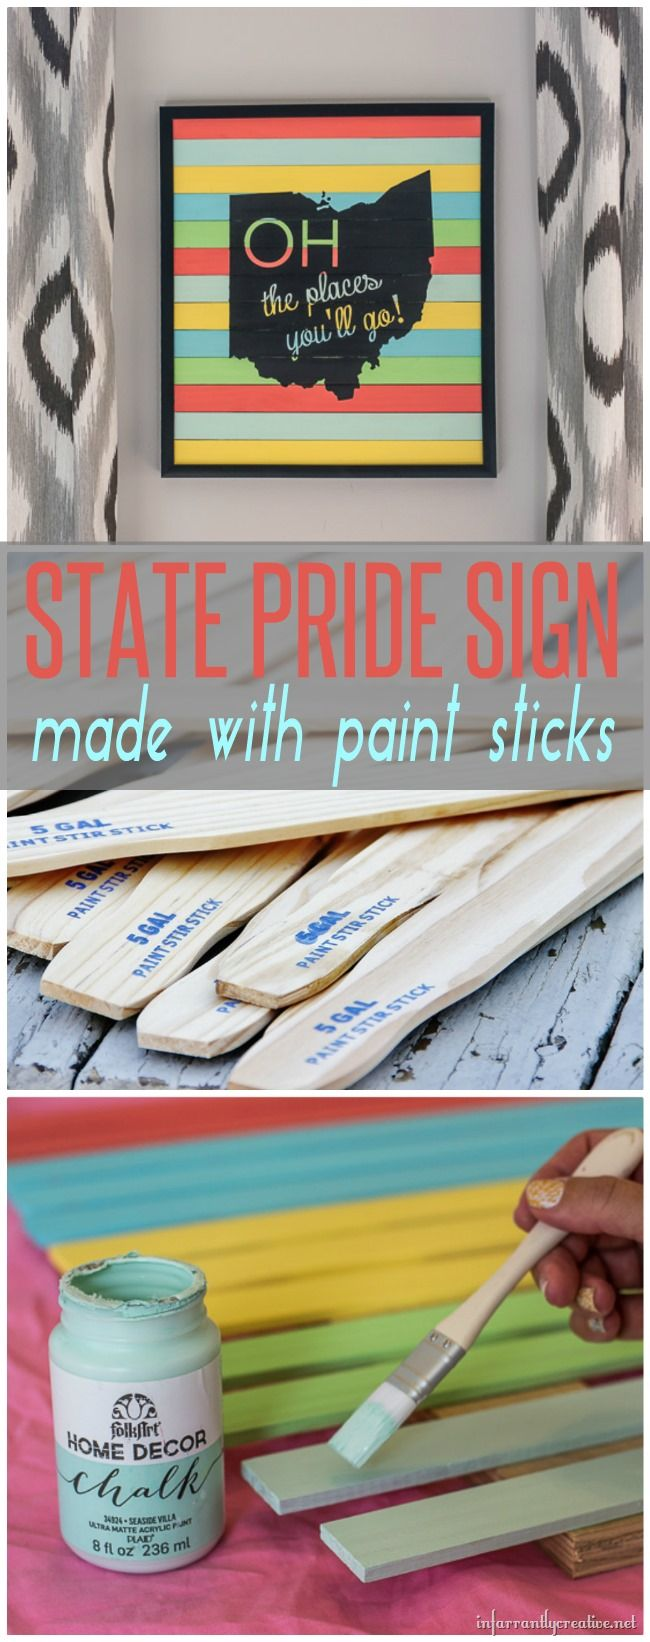 Paint stick projects from Beckie Farrant // Simple DIY // Re-purpsoe // Home Dec // Ohio // State pride sign // Joann.com